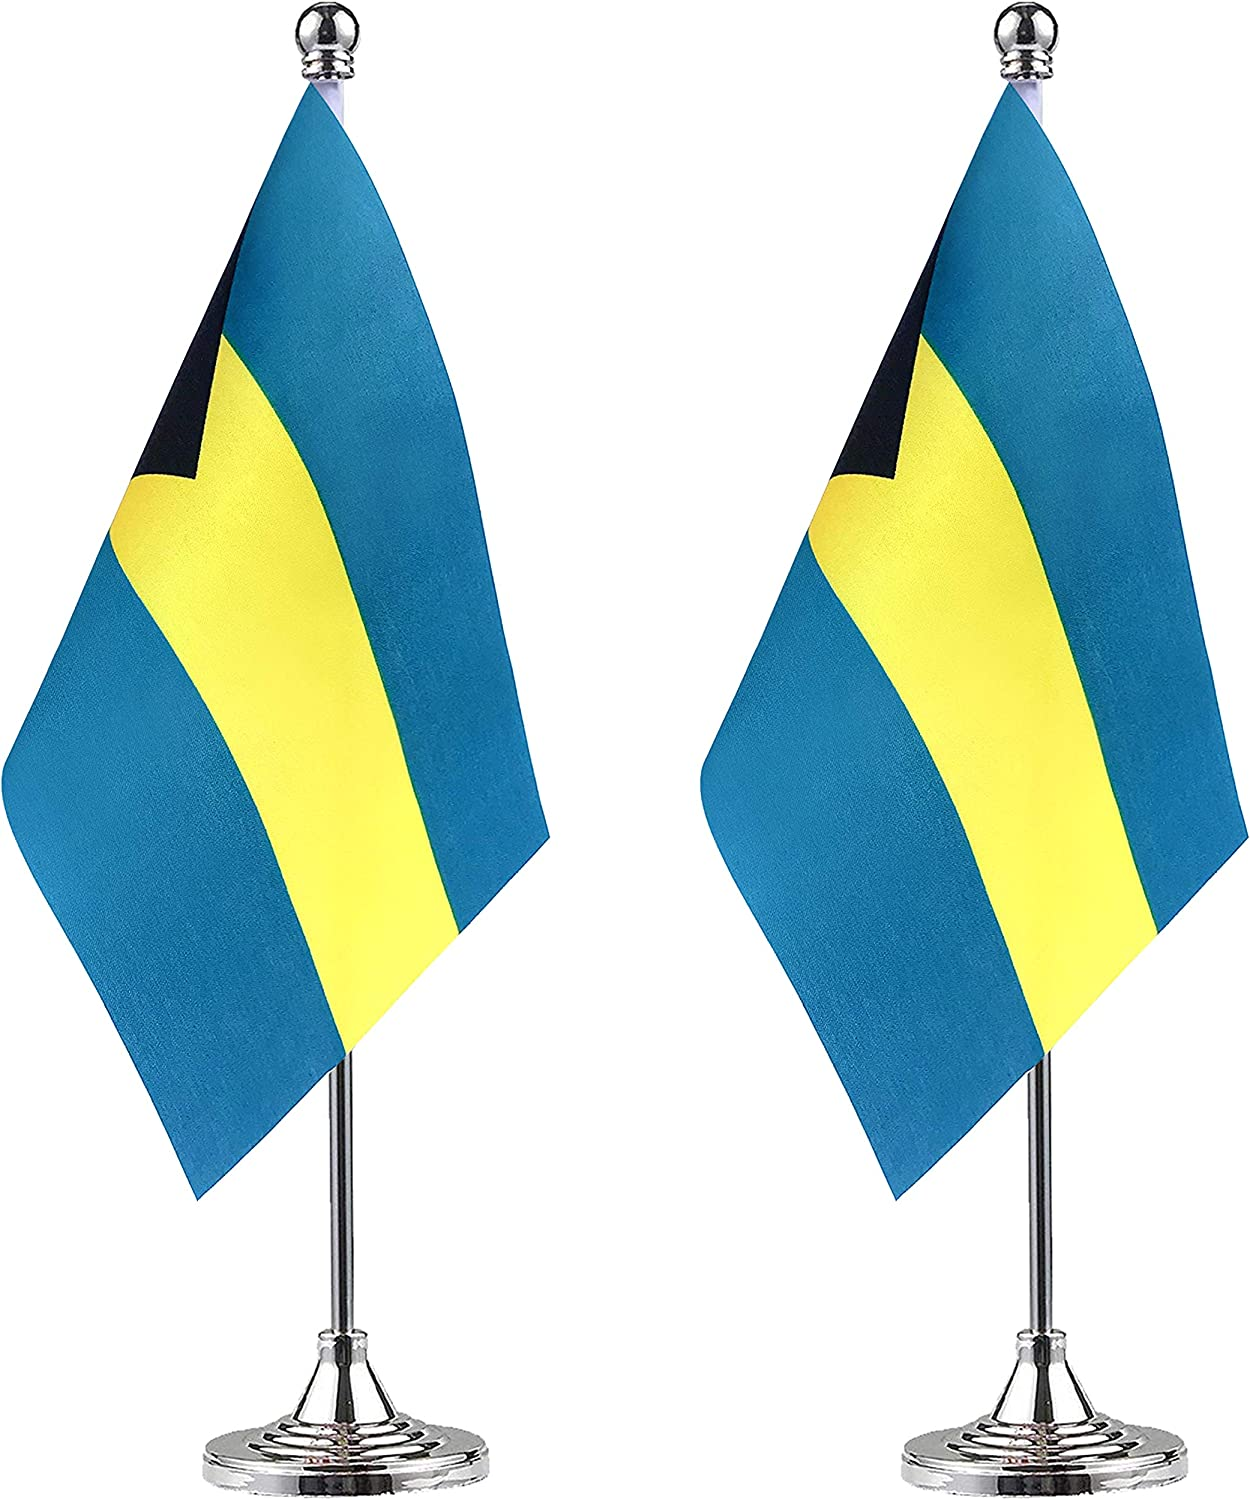 9 x 6 Barbados Barbadian Caribbean Large Desktop Table Flag With Wooden Base /& Pole Ideal For Party Conferences Office Display